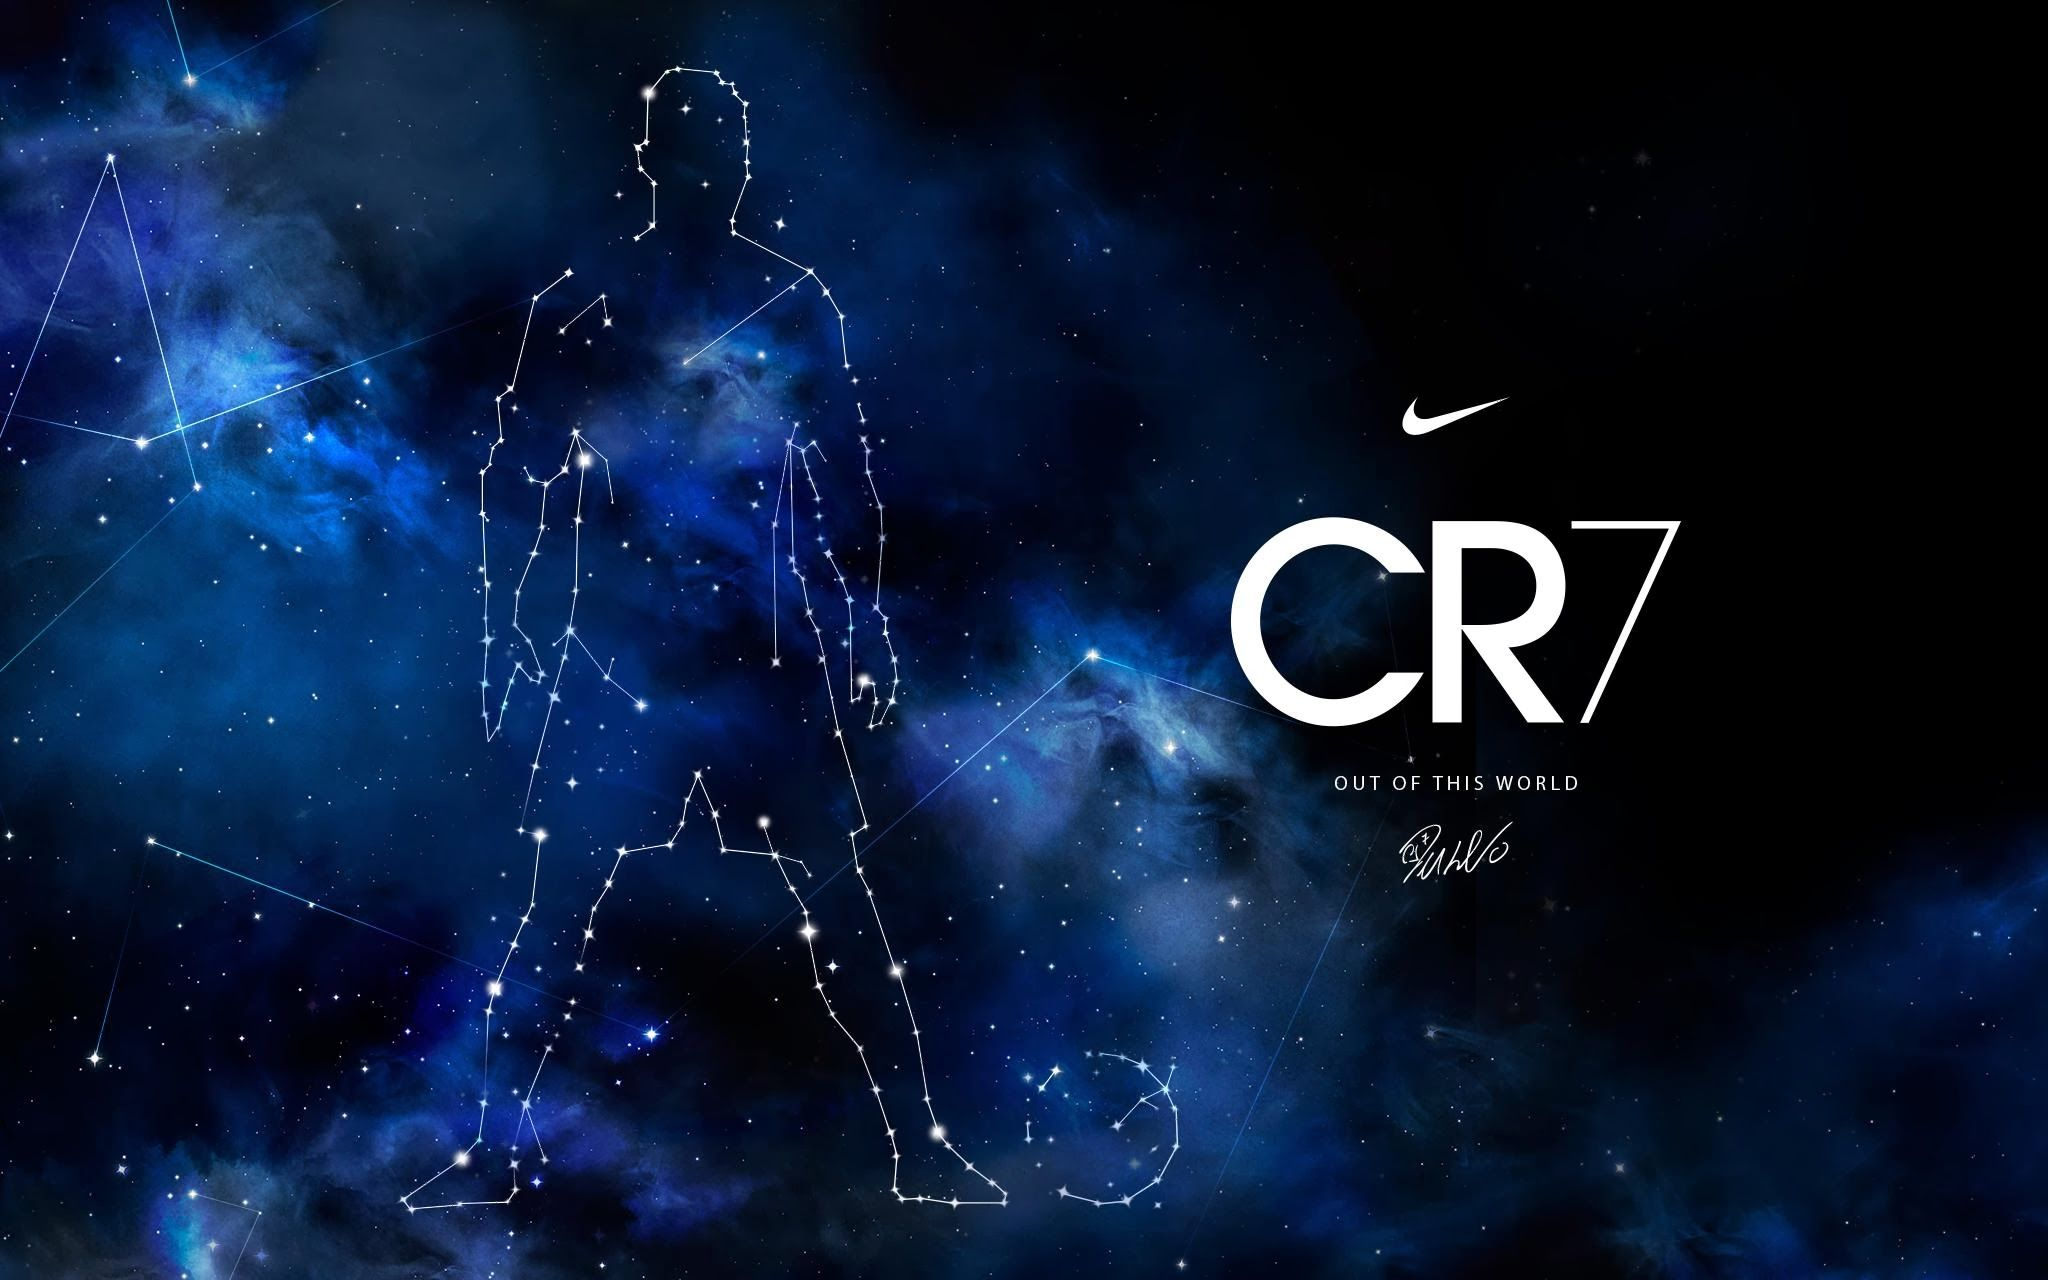 2048x1280 Cr7 Galaxy Background Free Download > SubWallpaper